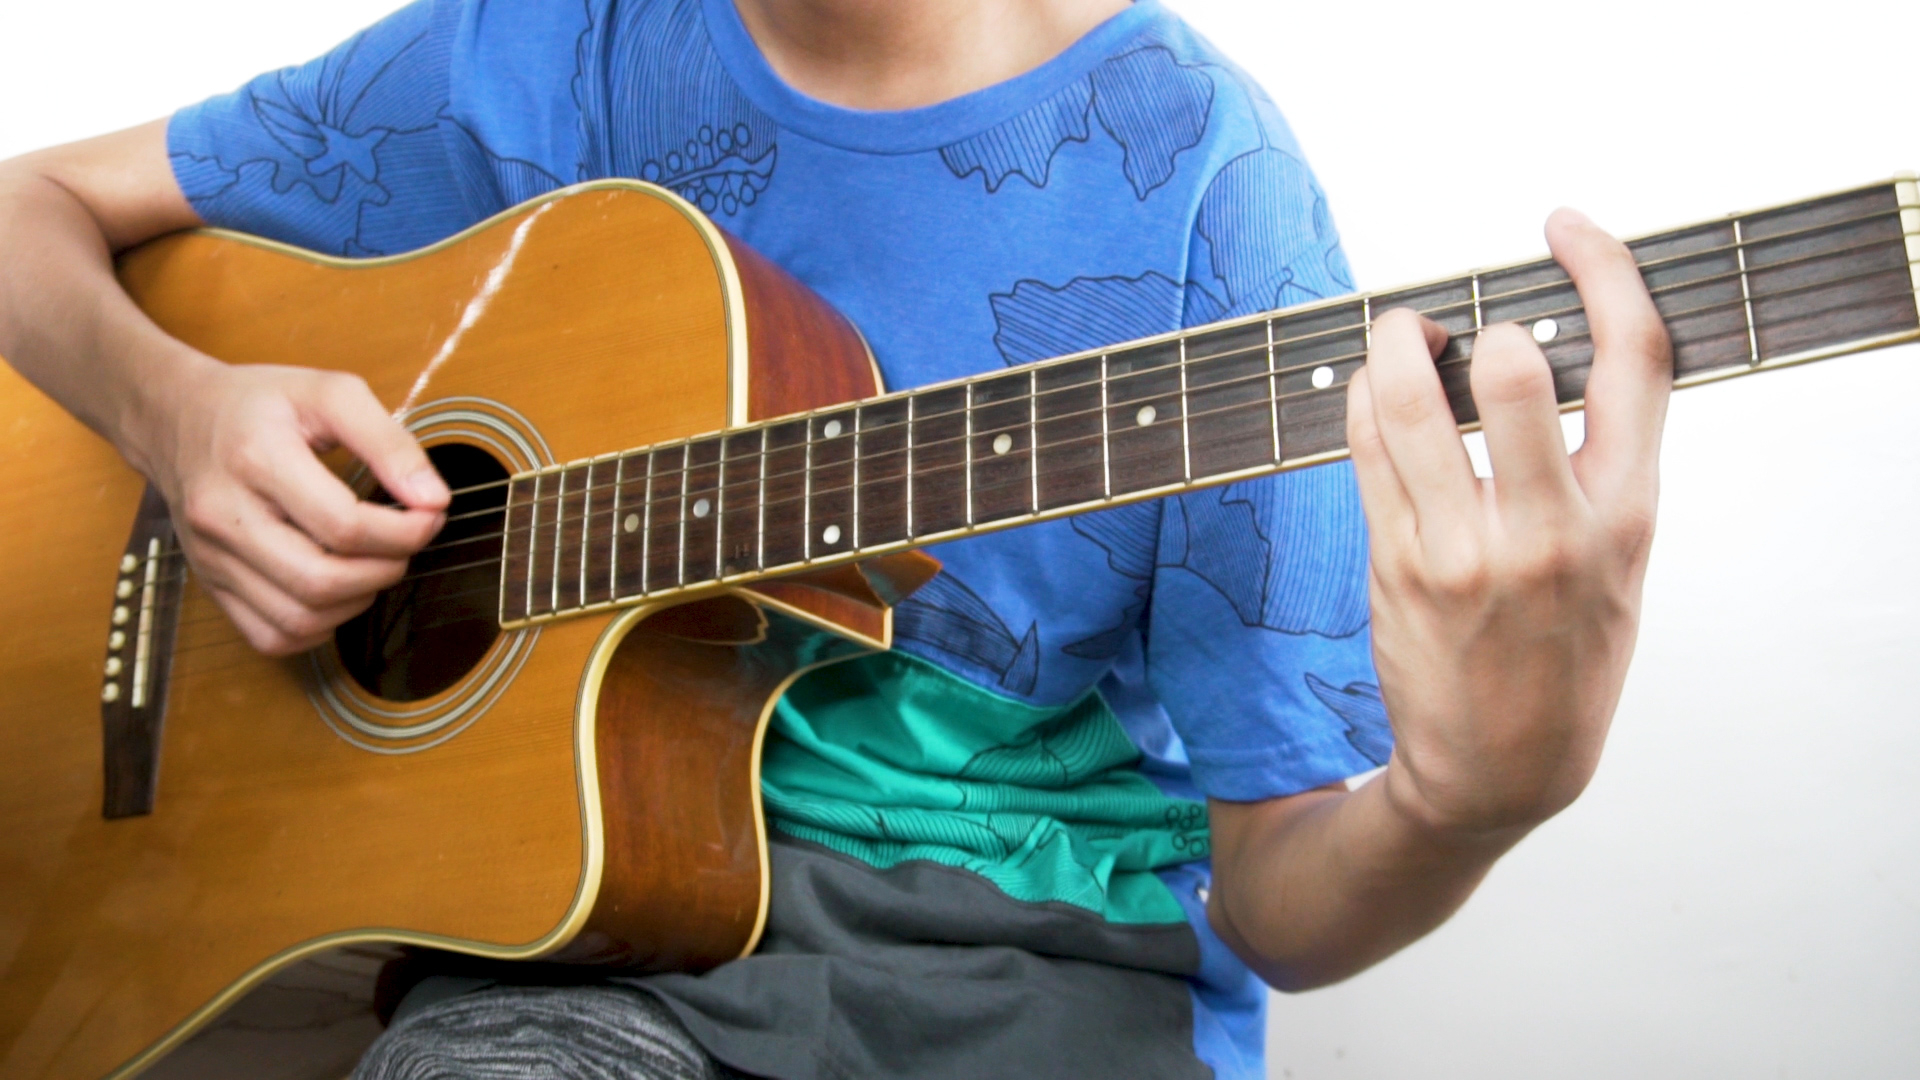 Bm Guitar Chord 3 Ways To Play A Bm Chord On Guitar Wikihow